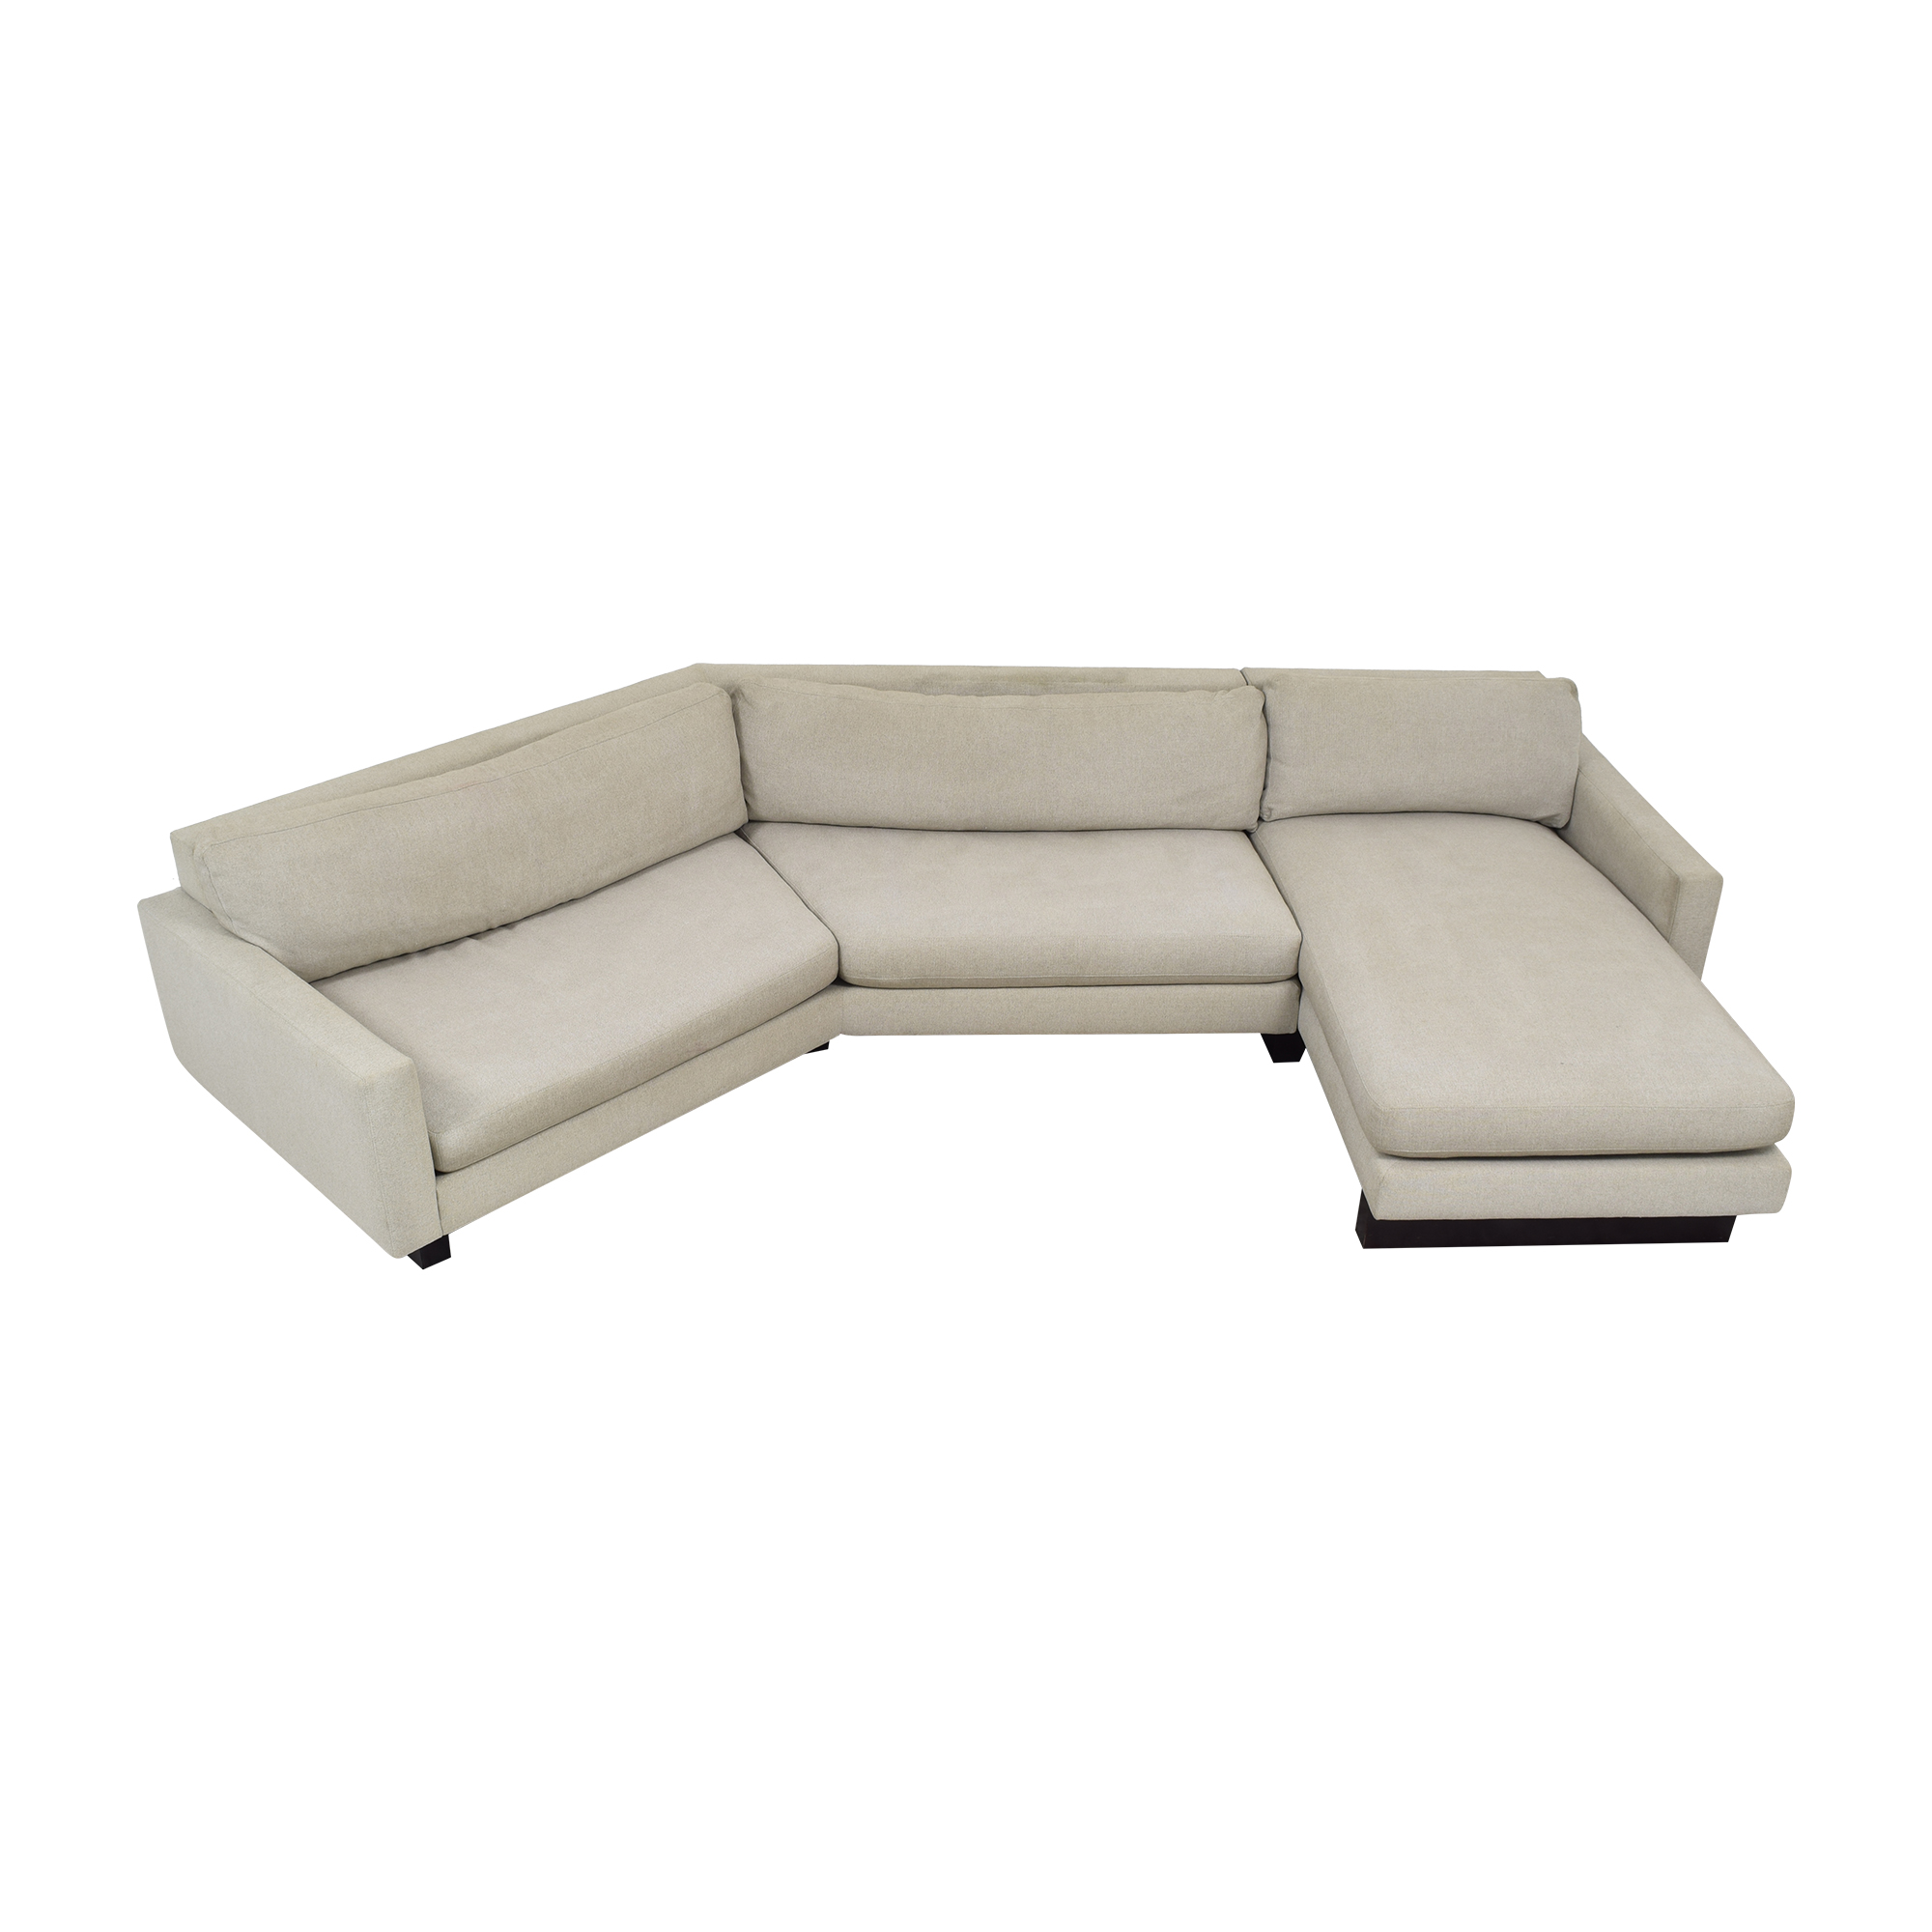 Room & Board Room & Board Hess Angled Sectional with Chaise ma